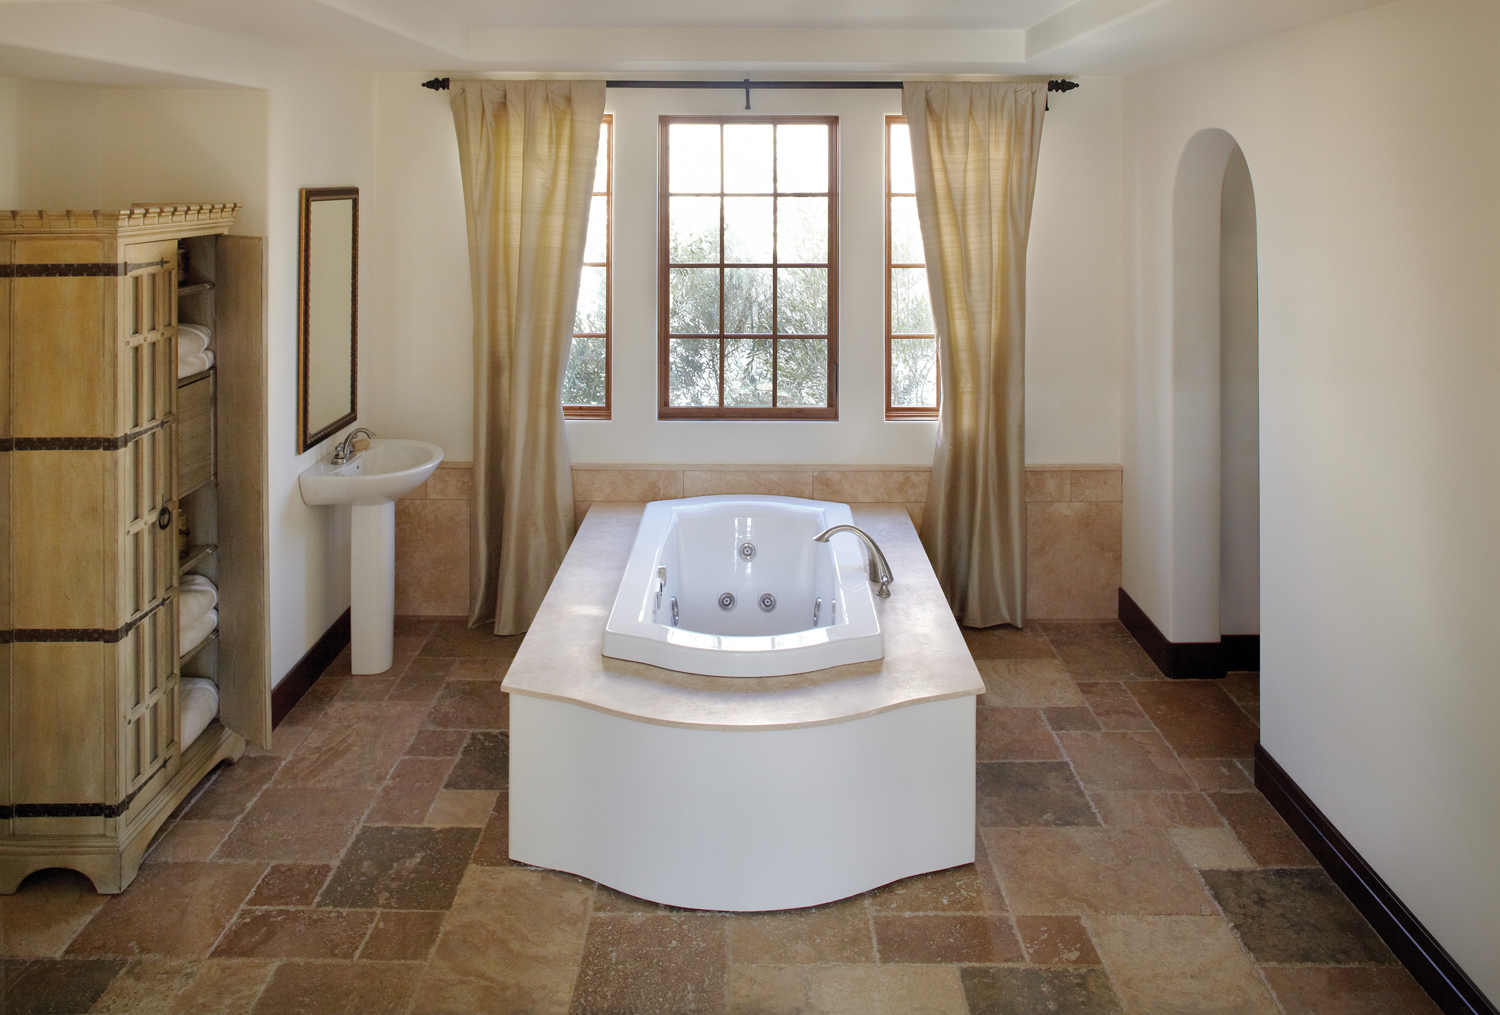 New Hydrotherapeutic Jacuzzi Luxury Baths